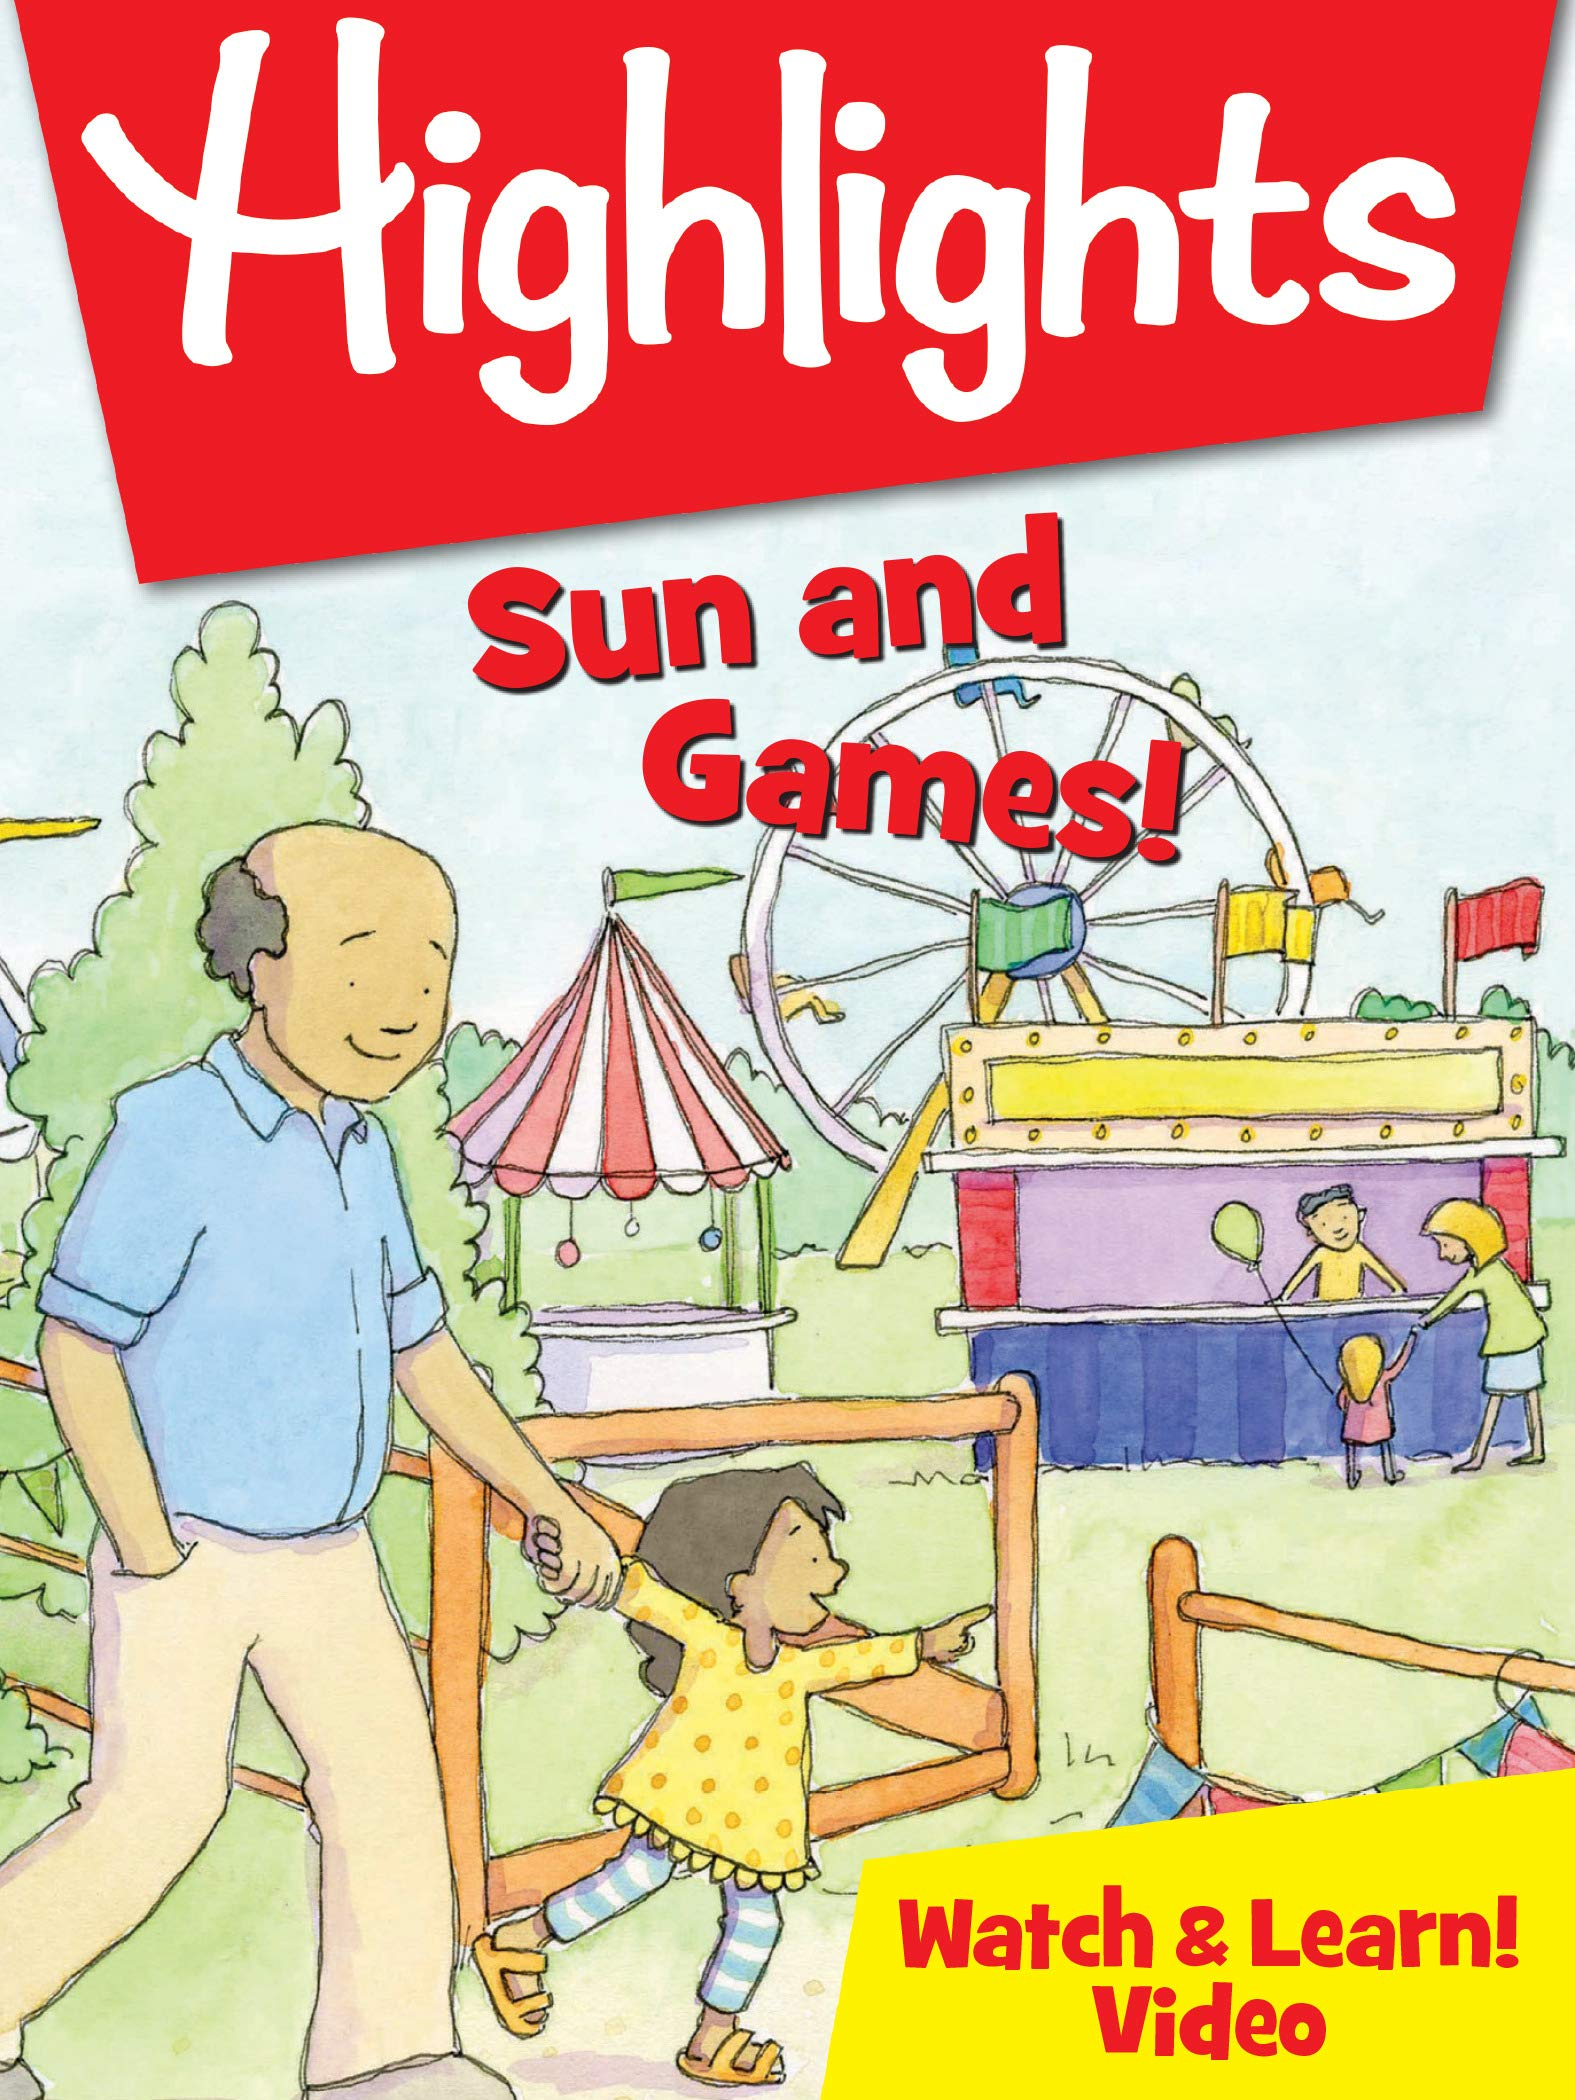 Highlights Watch & Learn!: Sun and Games! on Amazon Prime Video UK